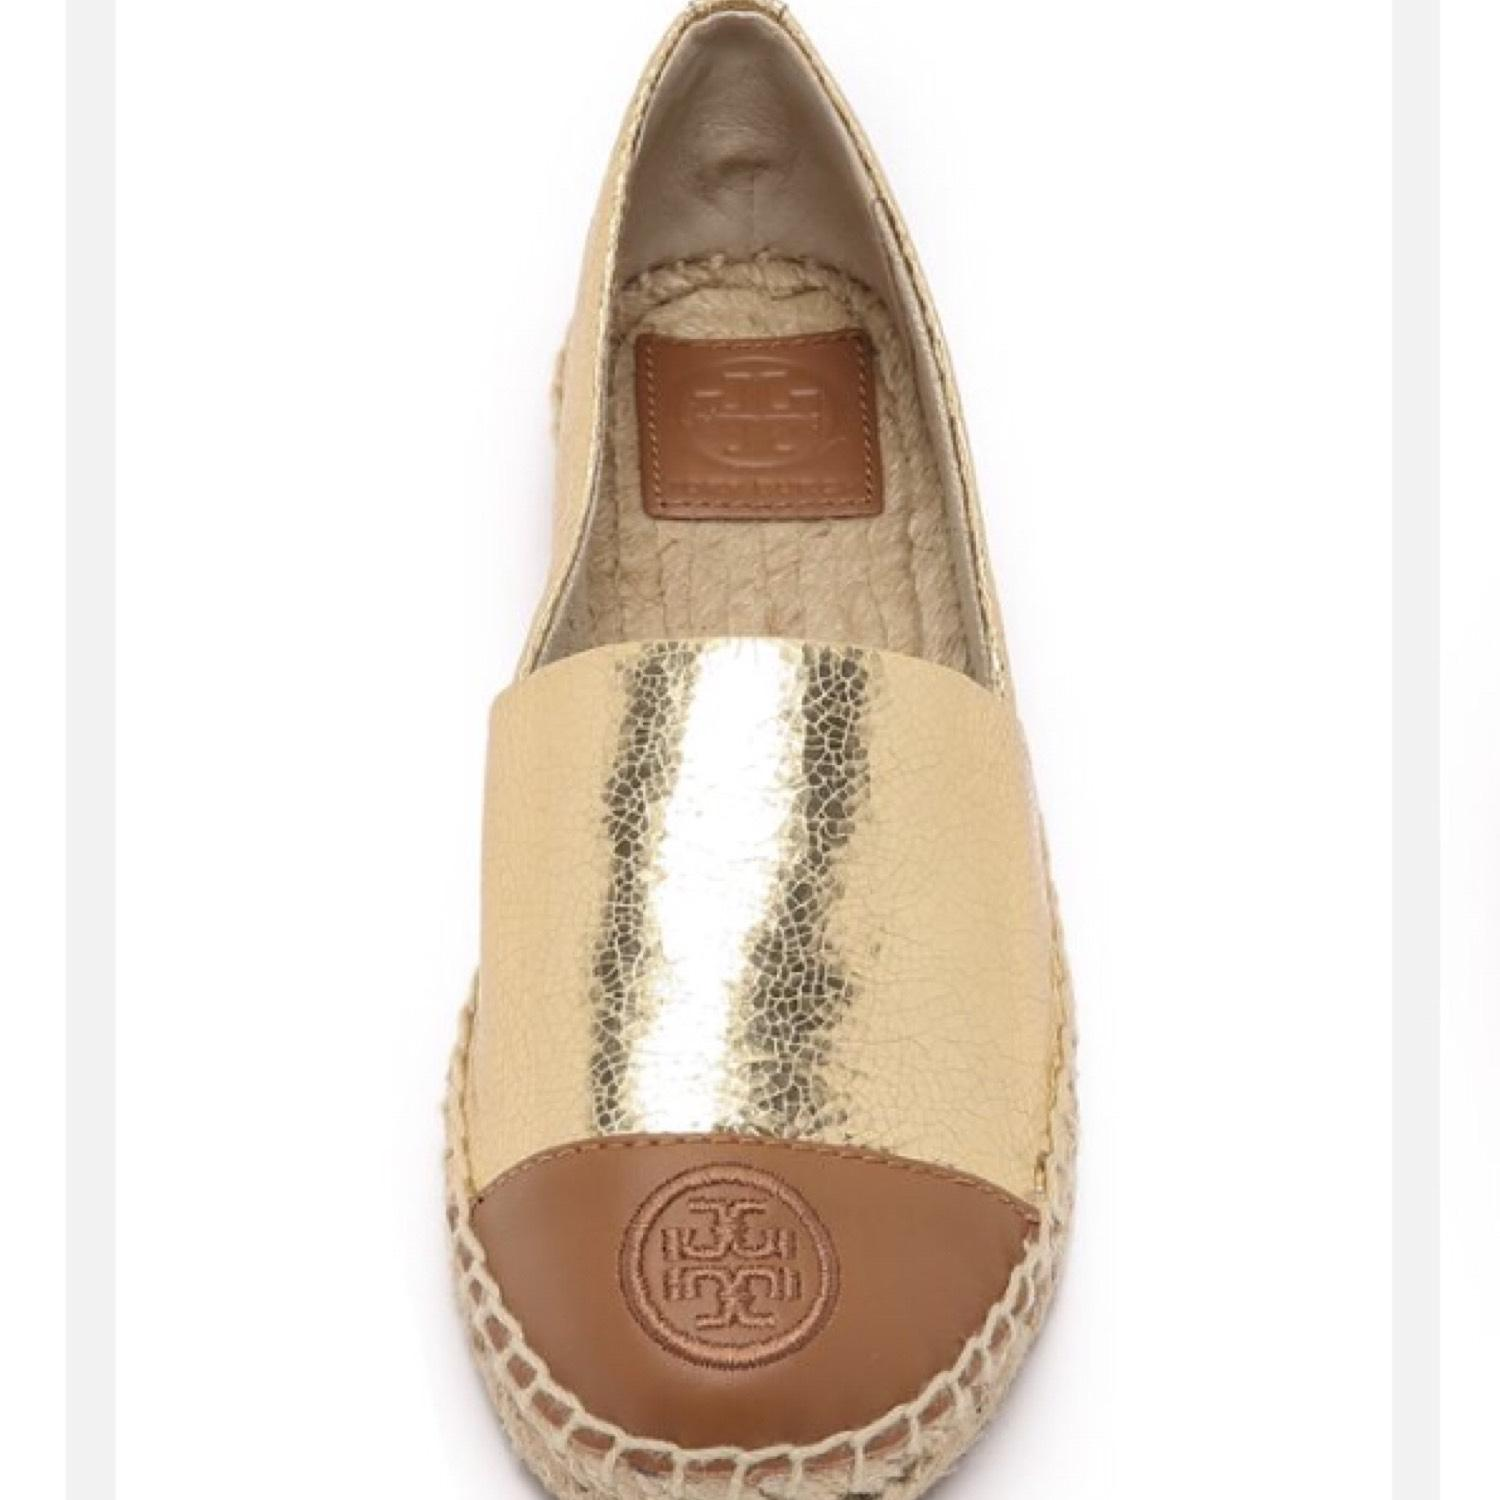 Tory or or or burch or tory et tan 234567 flats taille nous réguliers (m ... ca8970